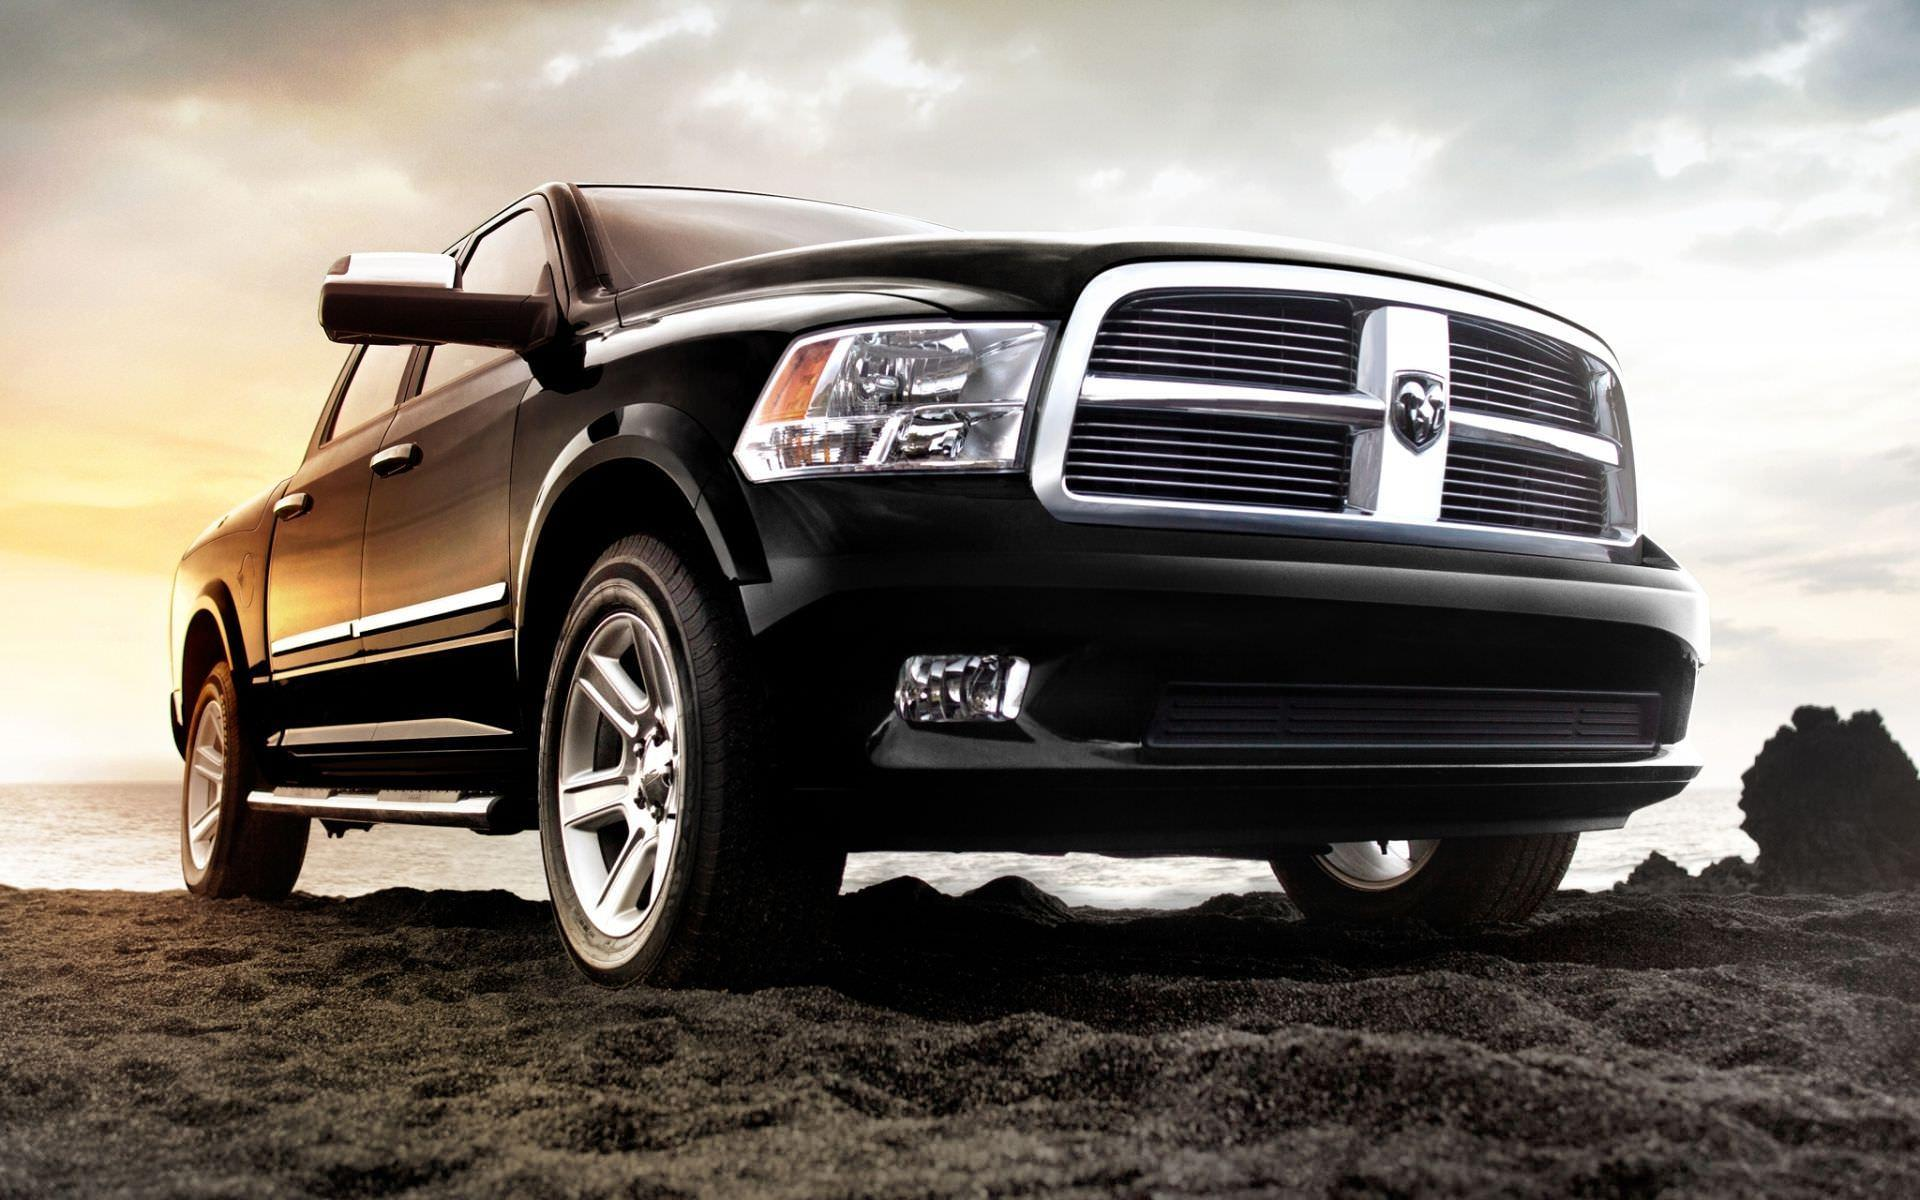 Wonderful Dodge Ram 1500 Wallpapers #7400 - Download Page ...